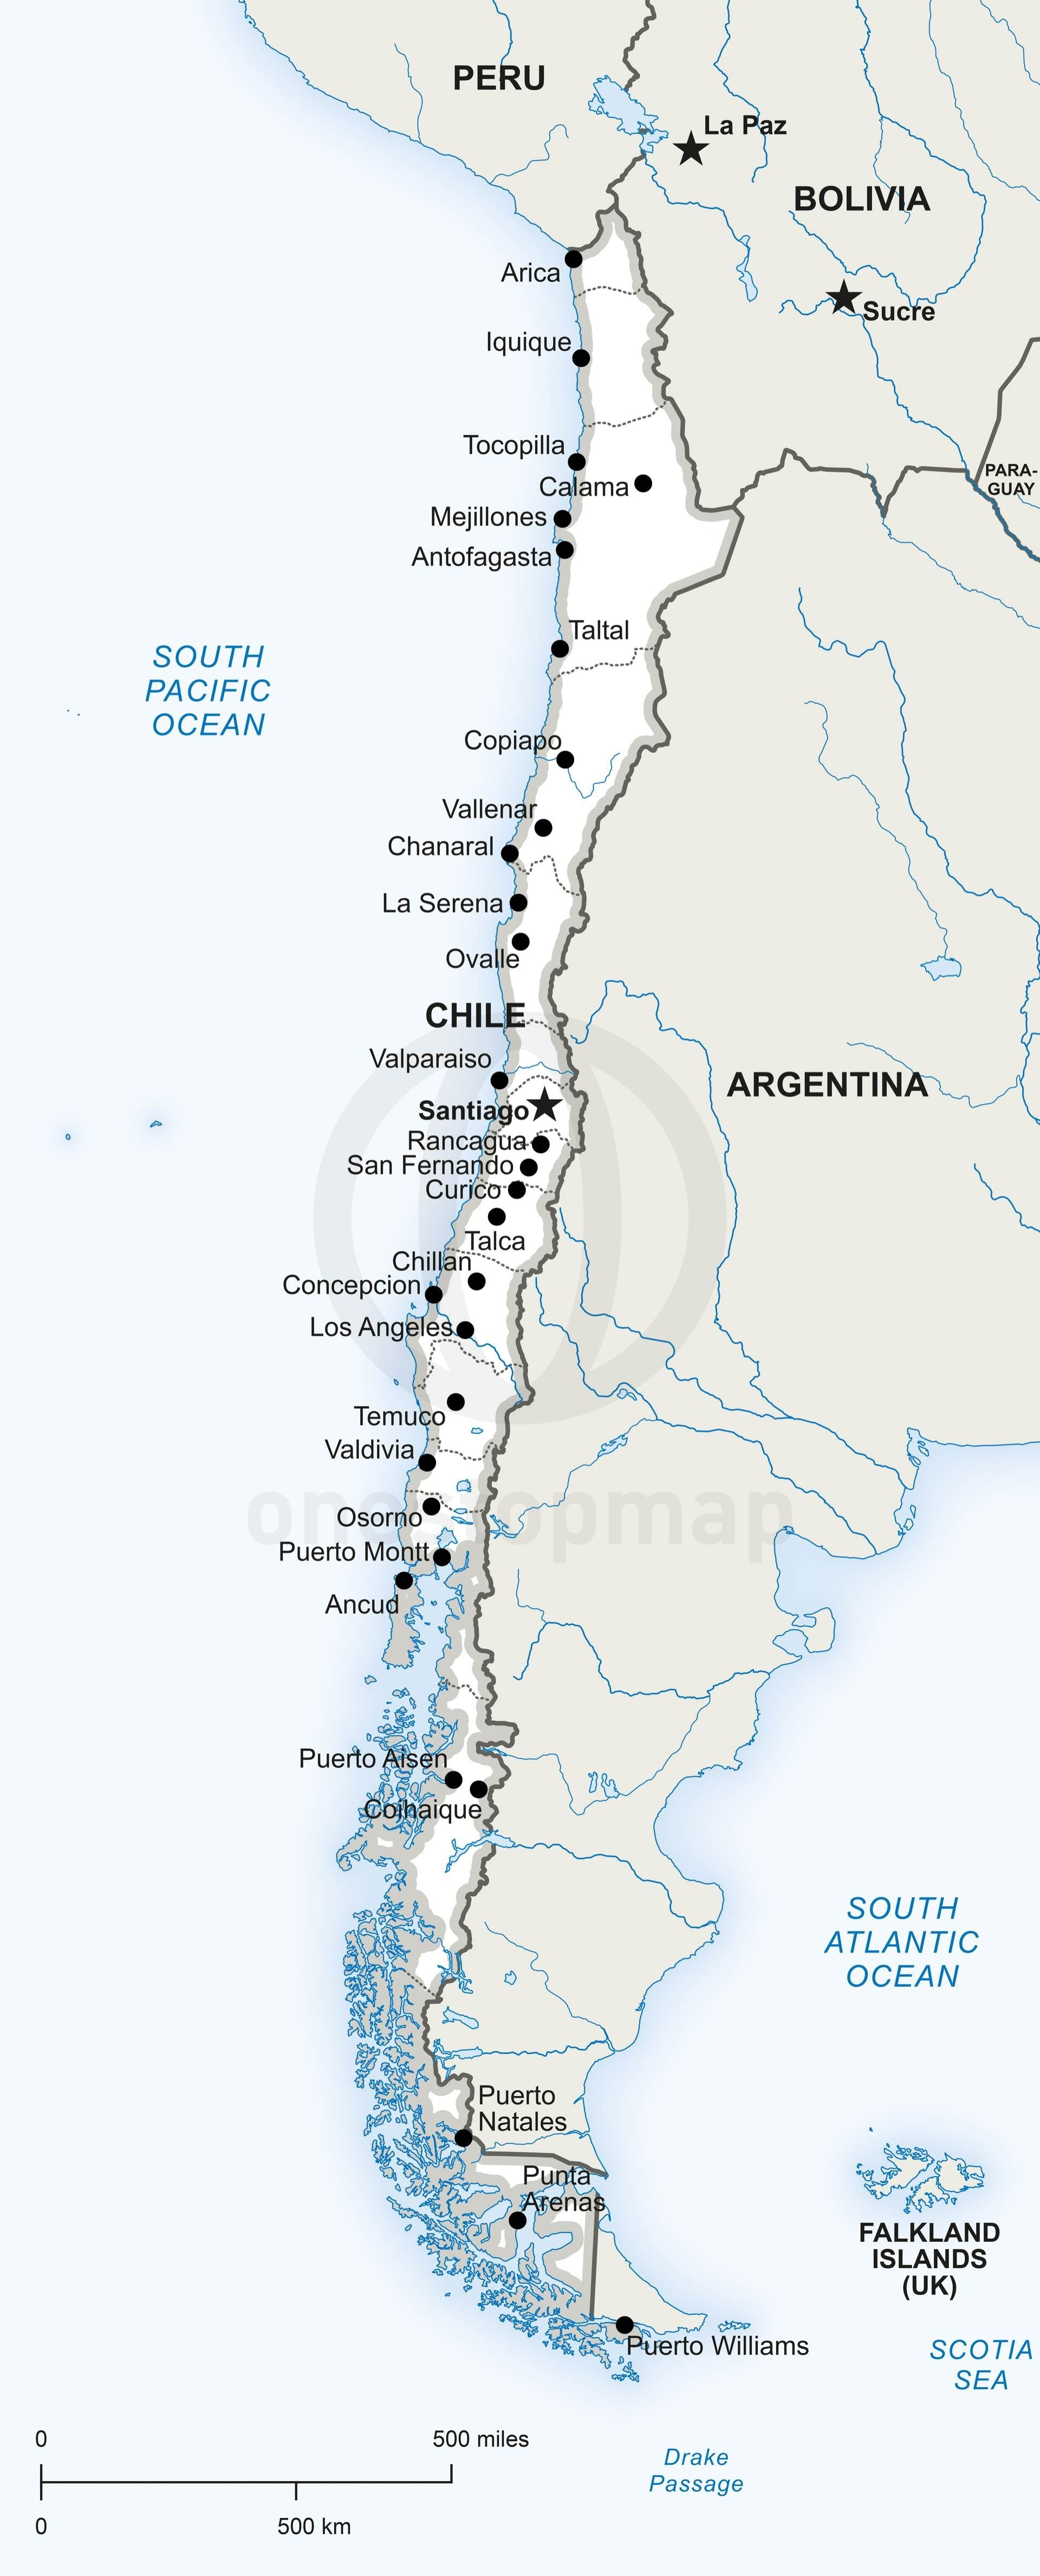 Vector Map Of South America High Detail Vectors Continents And - Maps of south america with capitals and countries